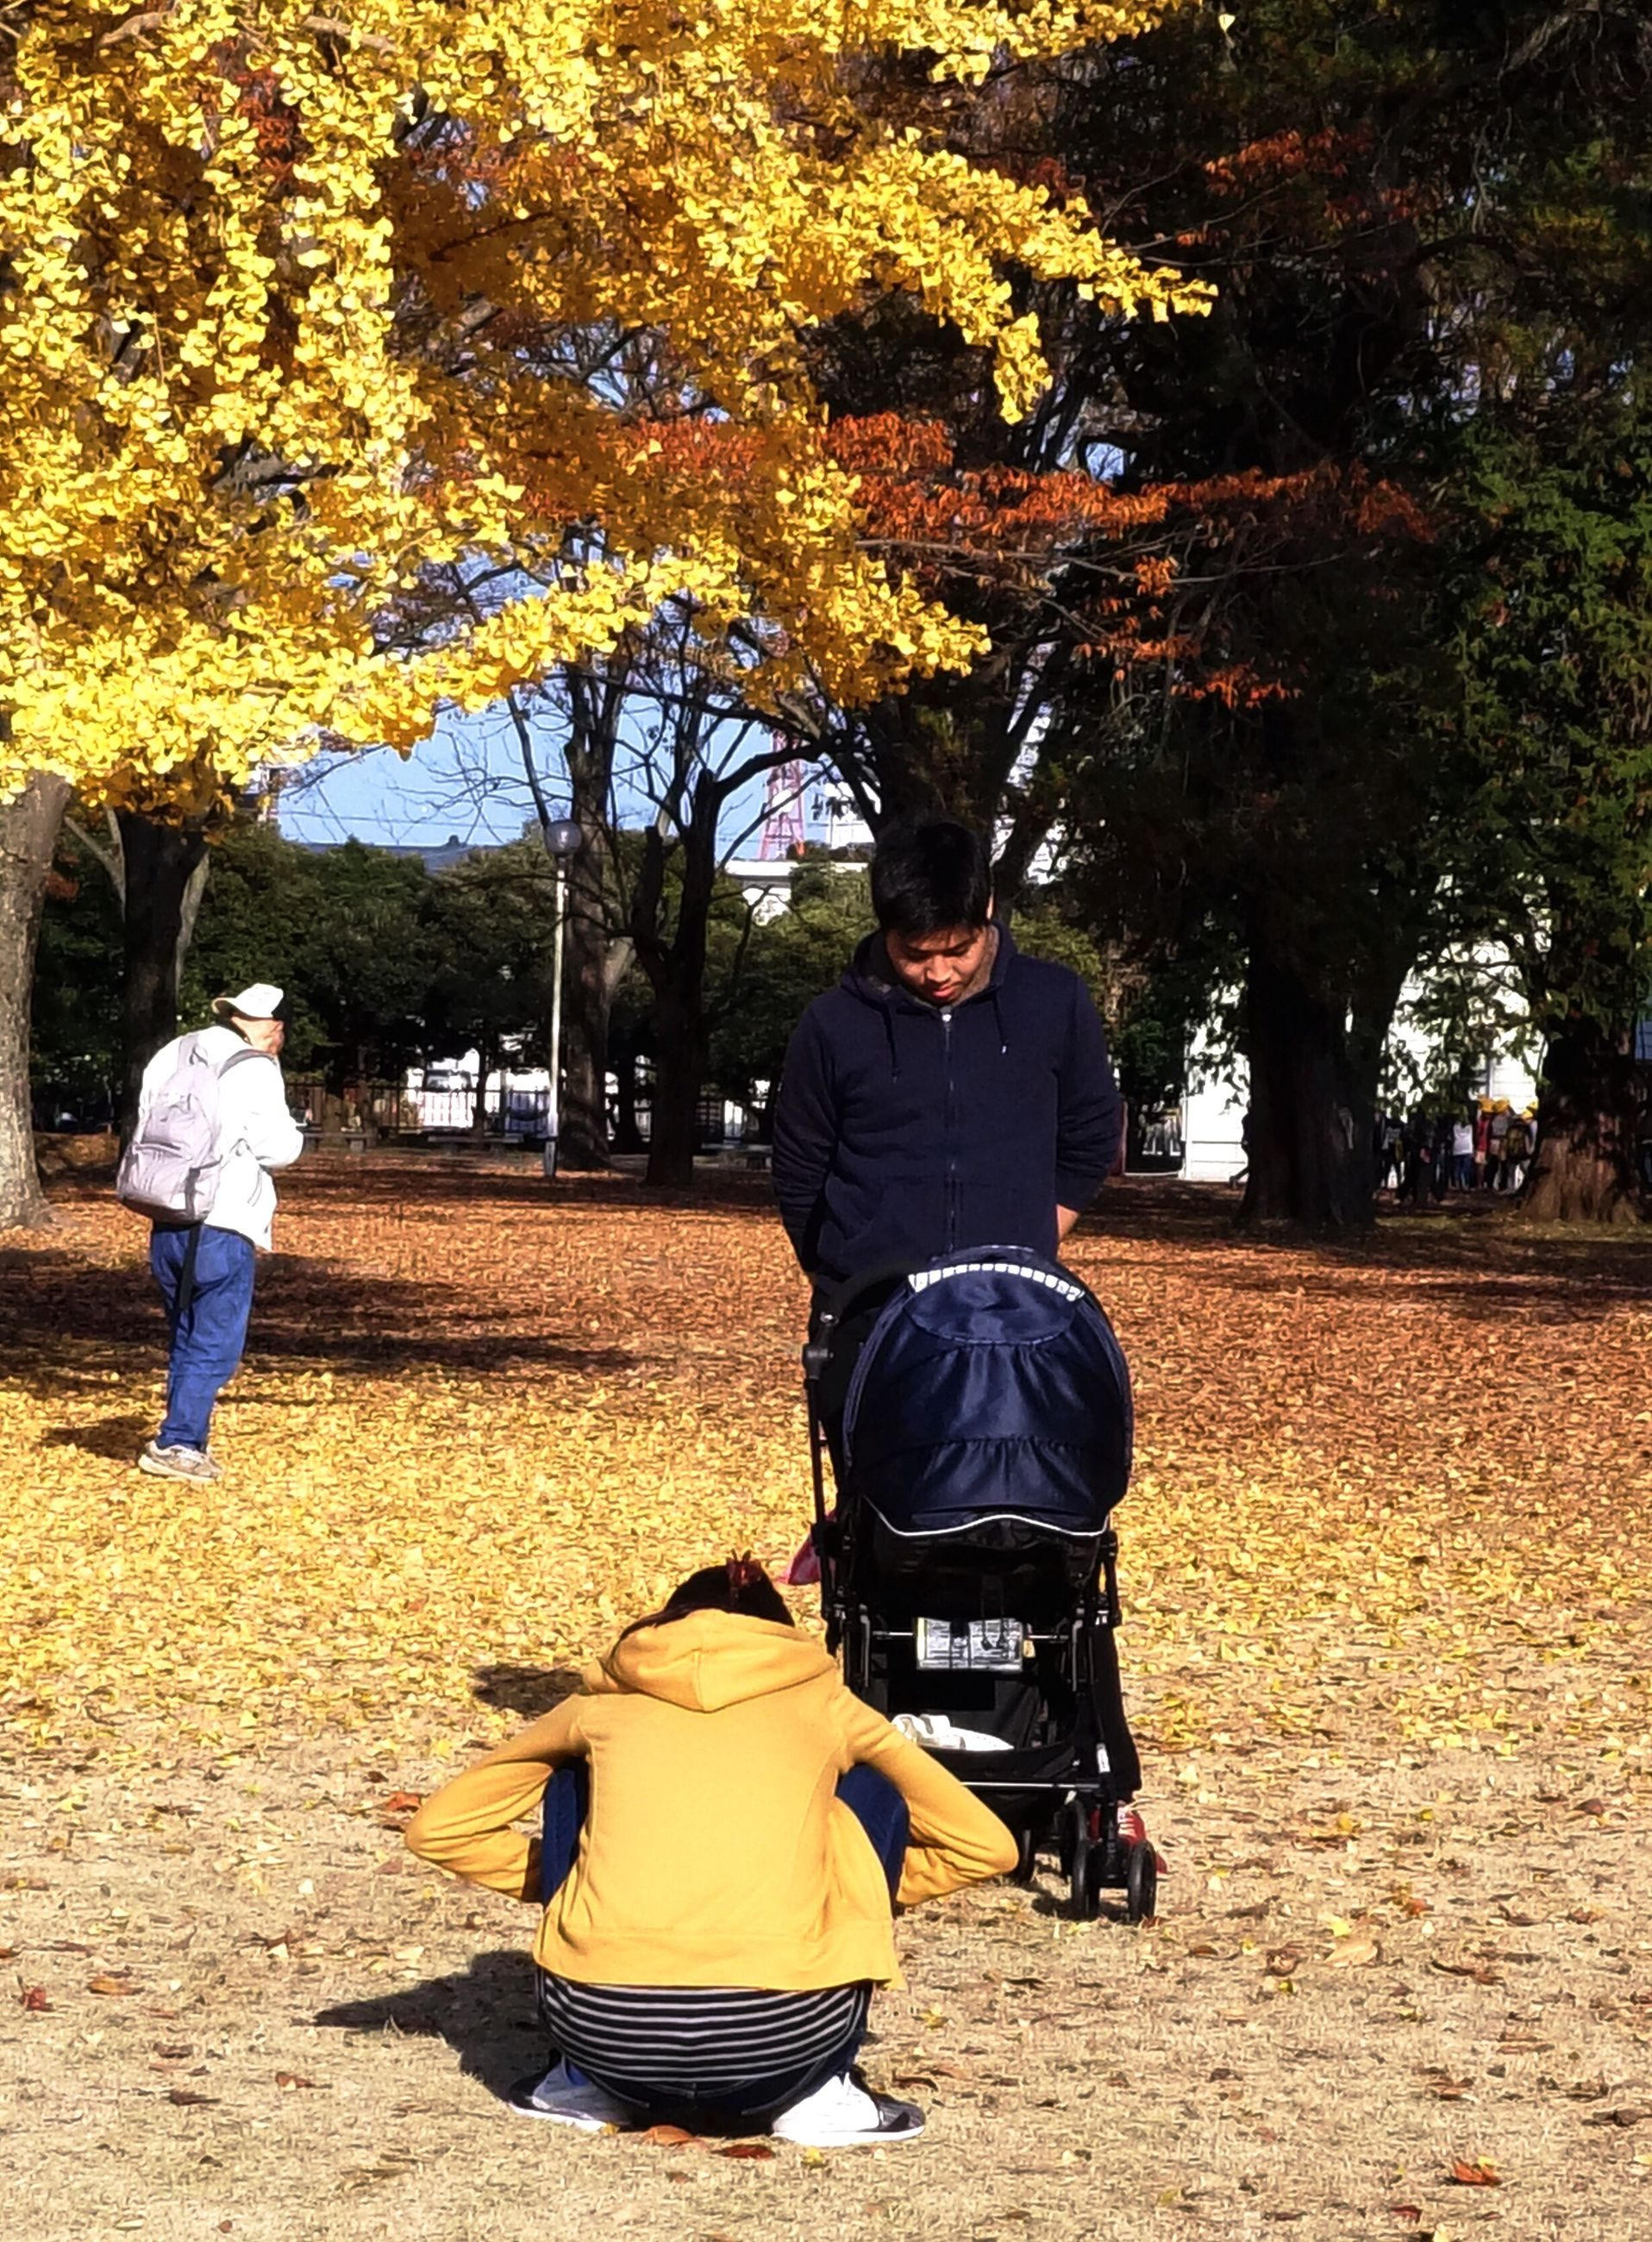 tree, men, real people, park - man made space, two people, leisure activity, women, outdoors, baby stroller, adult, day, people, adults only